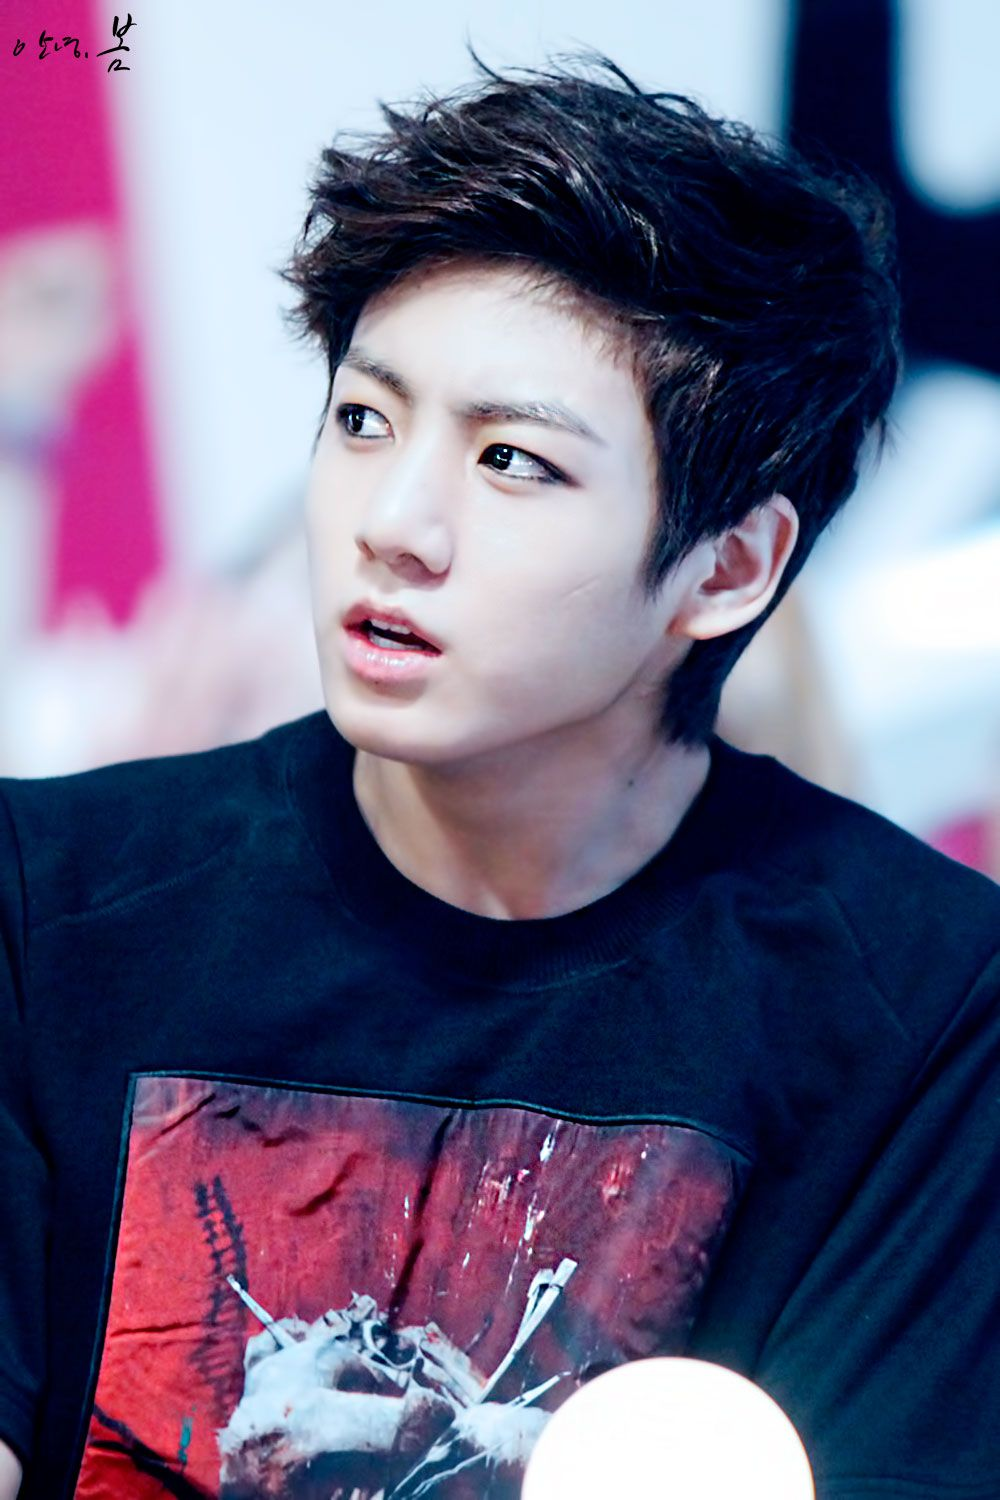 Is it just me or...... OMG KOOKIE WHO IN THE HELL GAVE YOU THAT SCRATCH ON YOUR CHEEK!!?